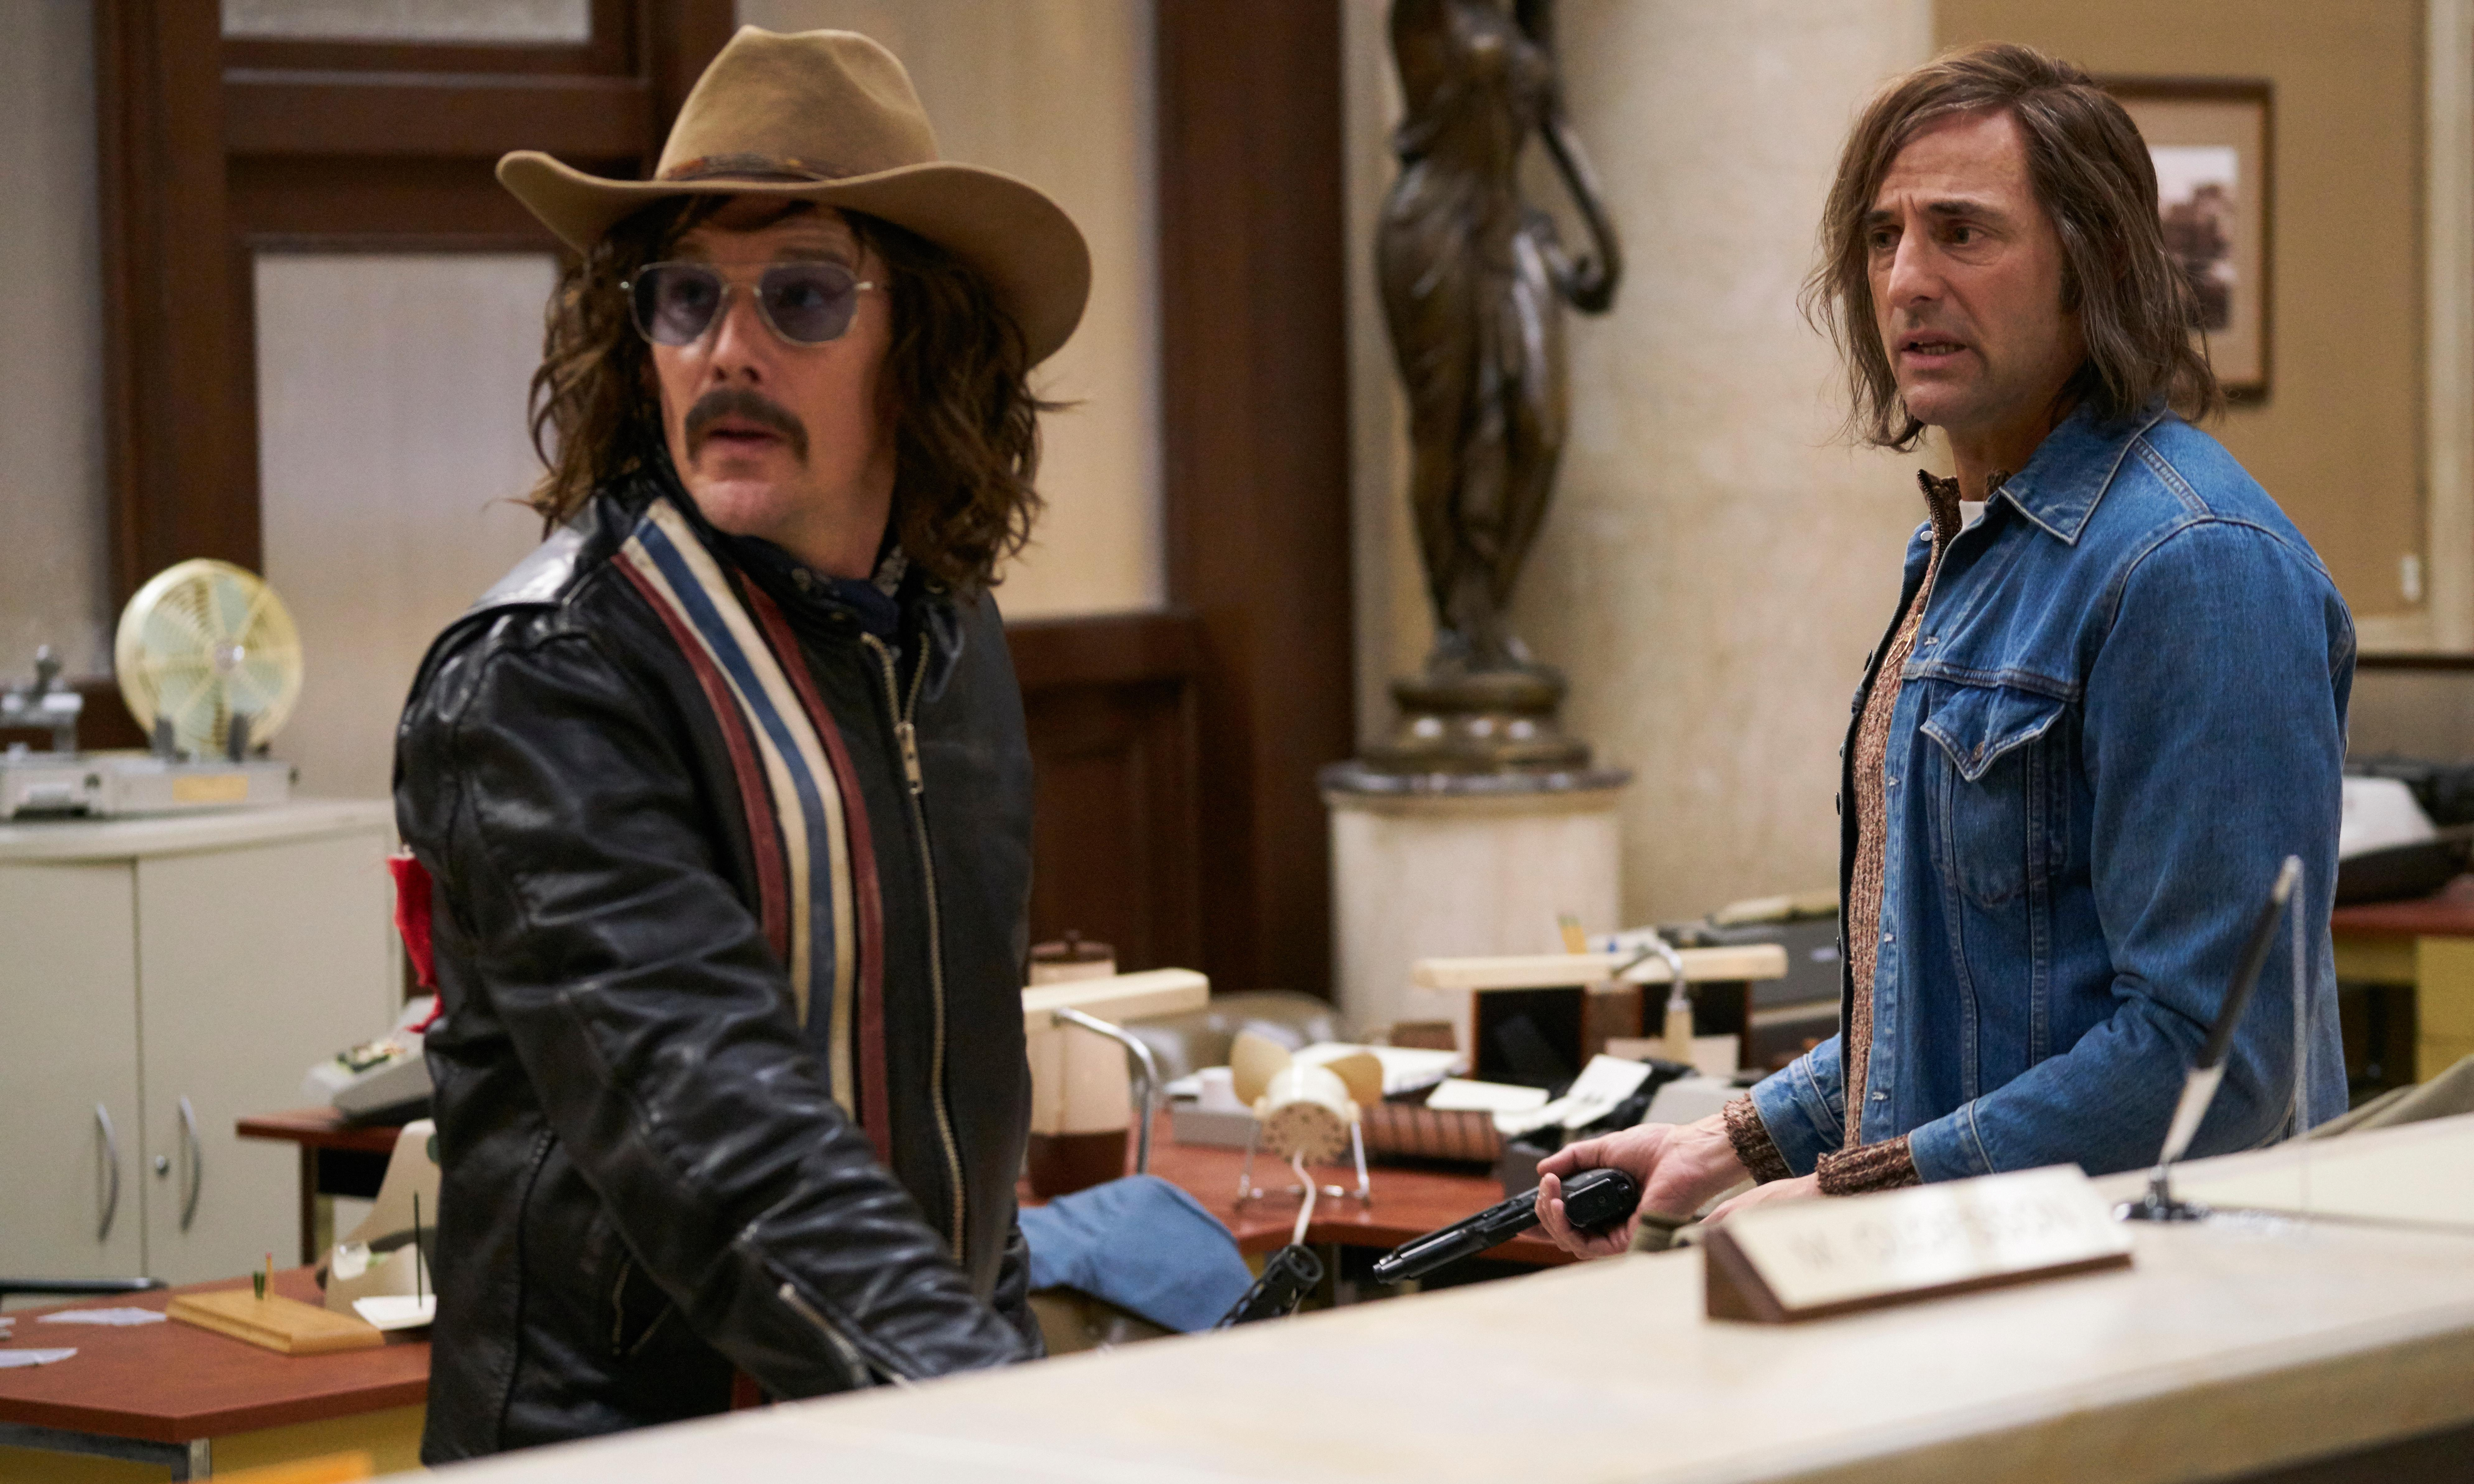 The Captor review – Ethan Hawke spreads Stockholm syndrome